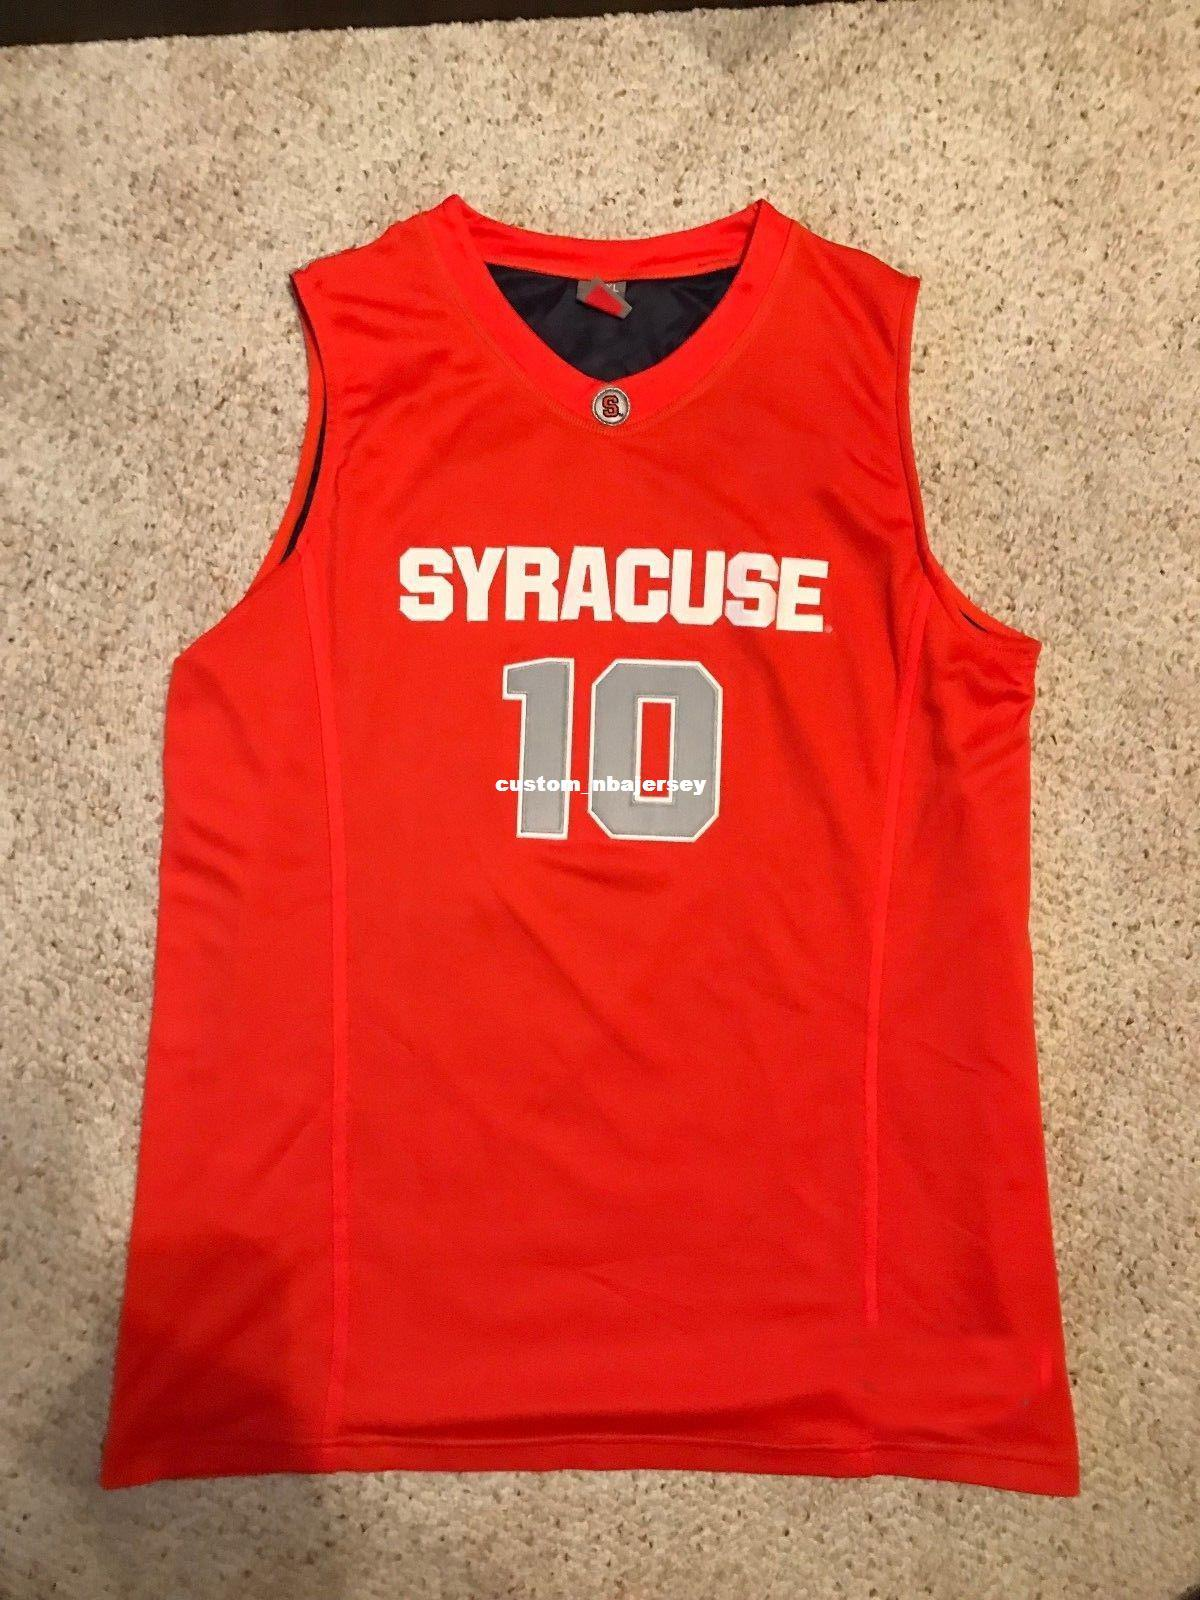 2019 Cheap Custom 2009 Syracuse Orange 10 Basketball Jersey Jonny